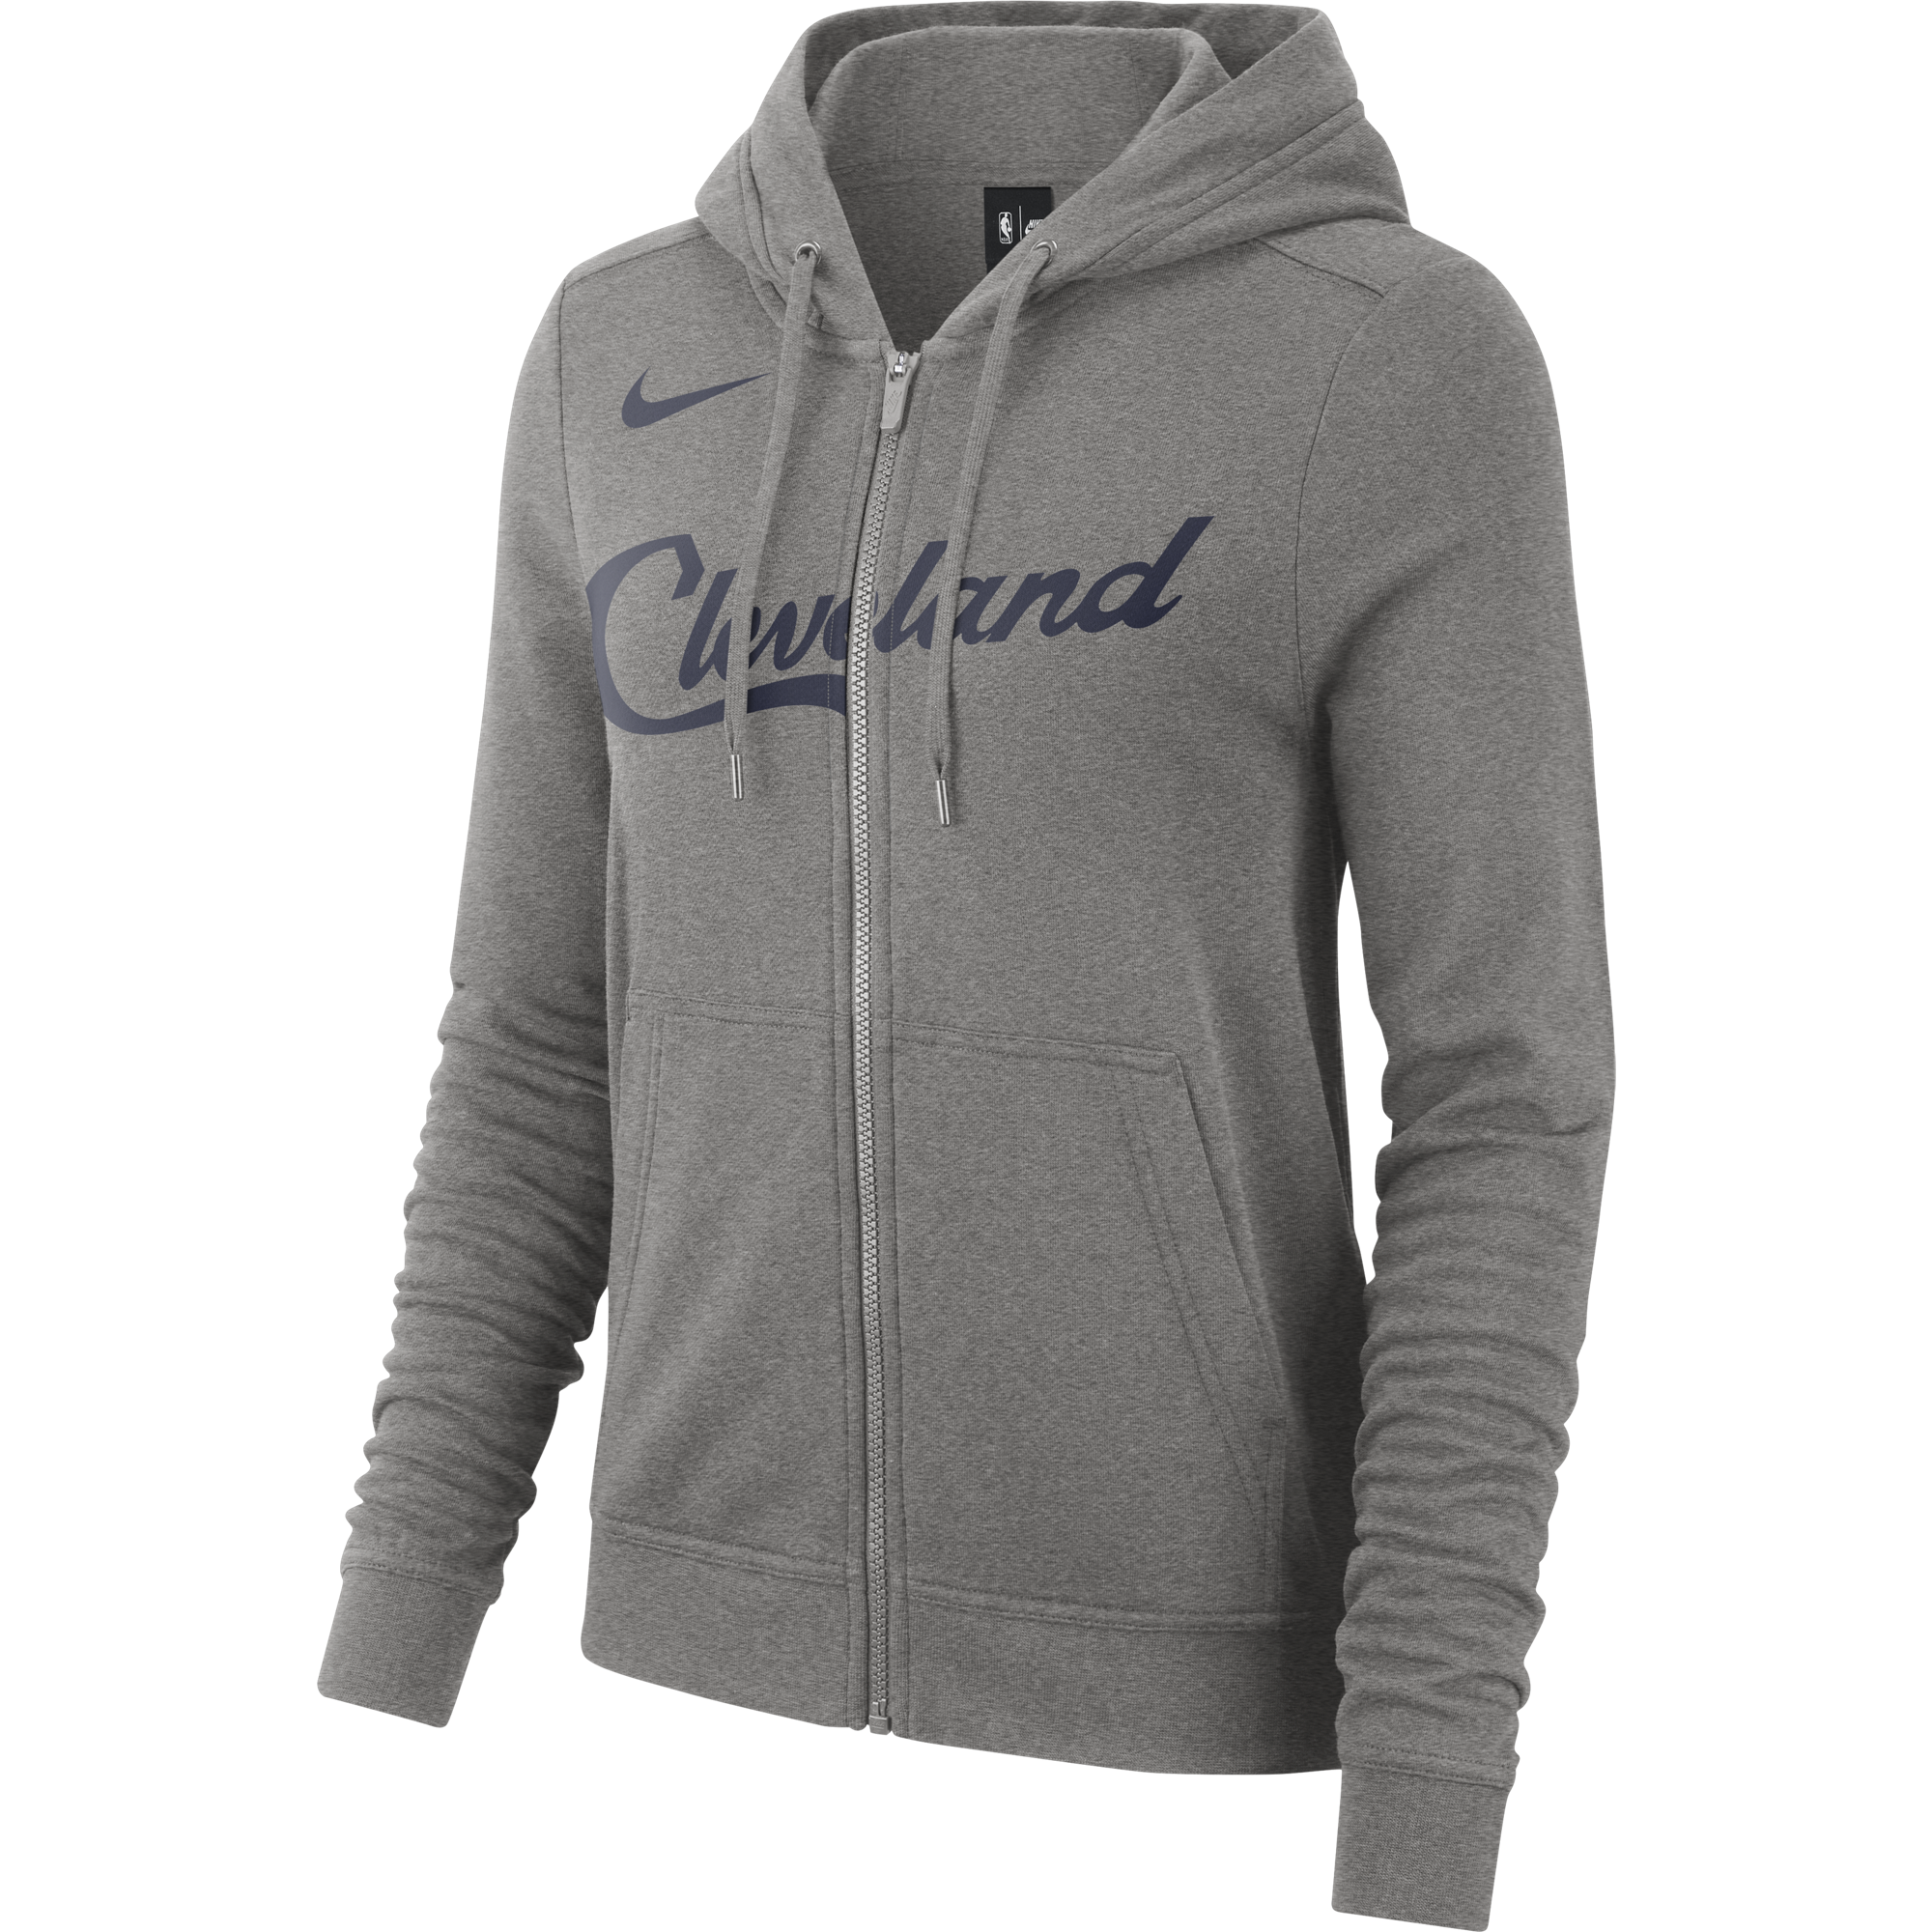 Cleveland Cavaliers Nike Women s Earned Edition Full-Zip Hoodie for  74.99  Fanatics ae012f7bc